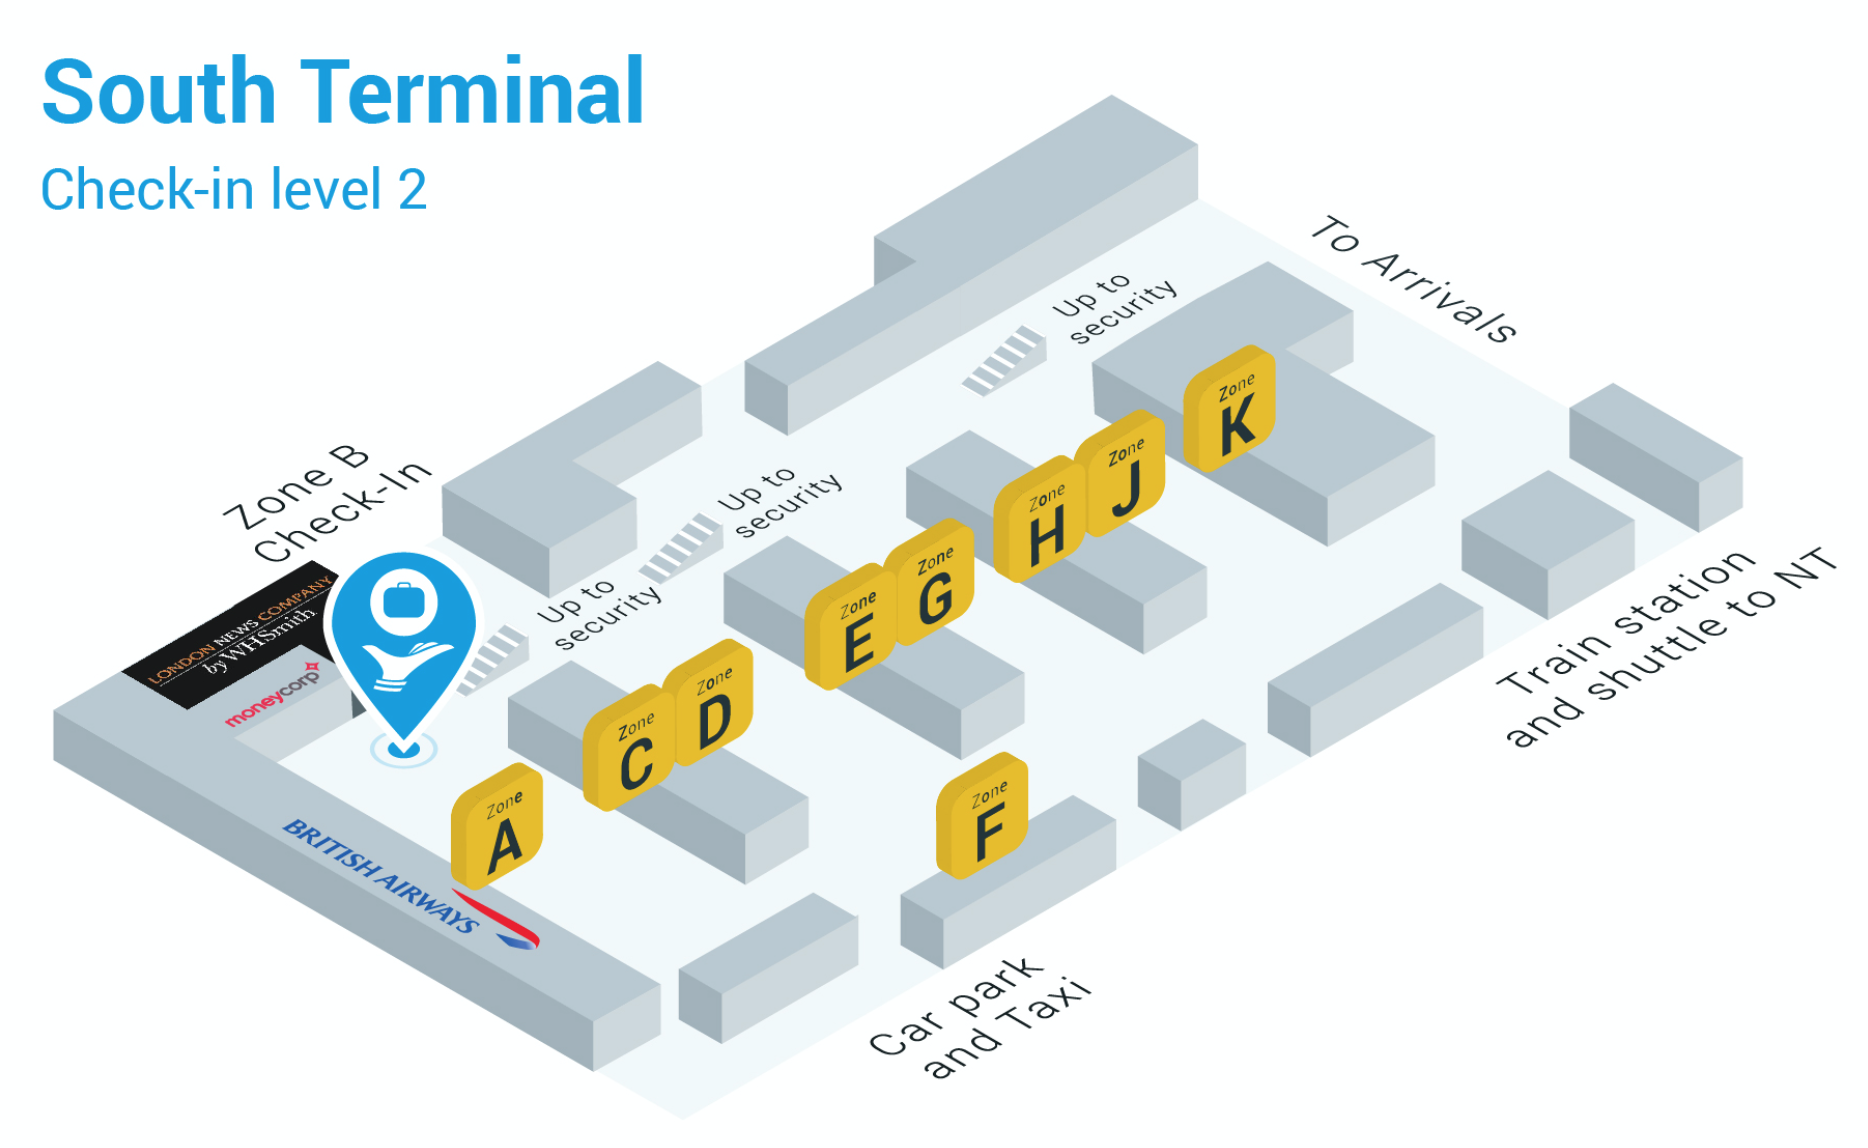 Gatwick Airport South Terminal Airportr Help Centre